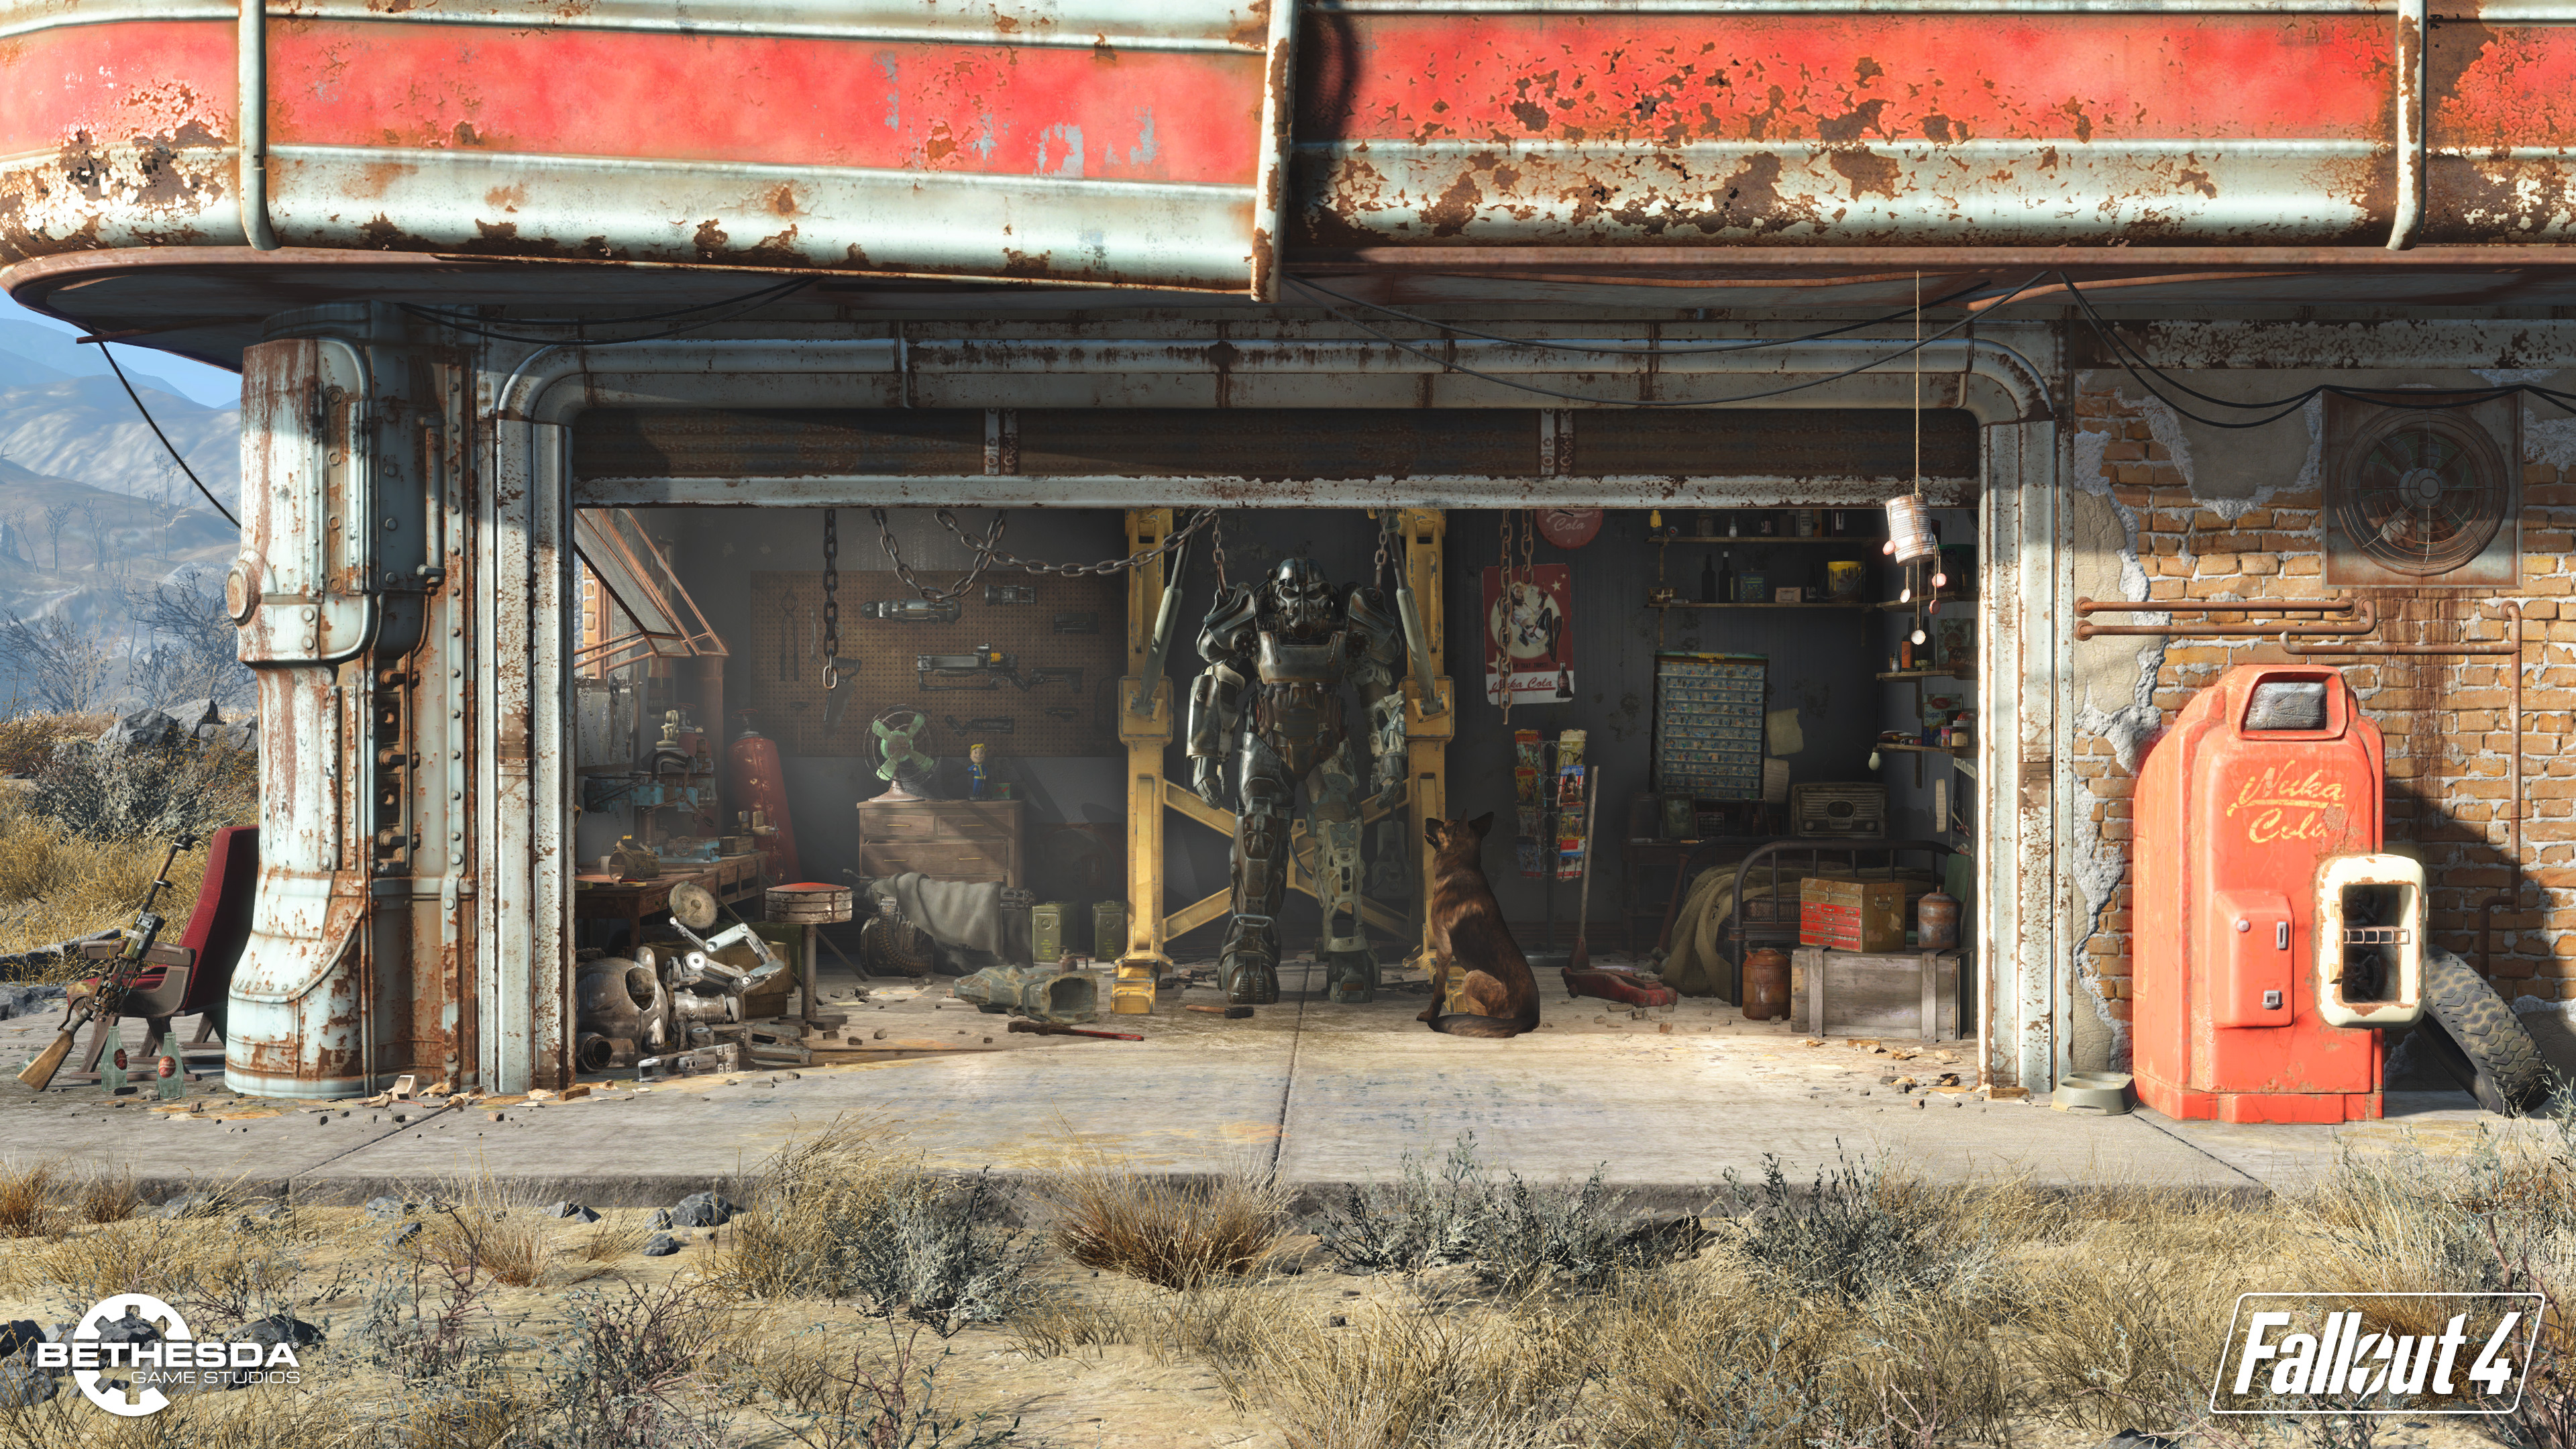 fallout 4 3 1535966020 - Fallout 4 3 - xbox games wallpapers, ps4 wallpapers, games wallpapers, fallout 4 wallpapers